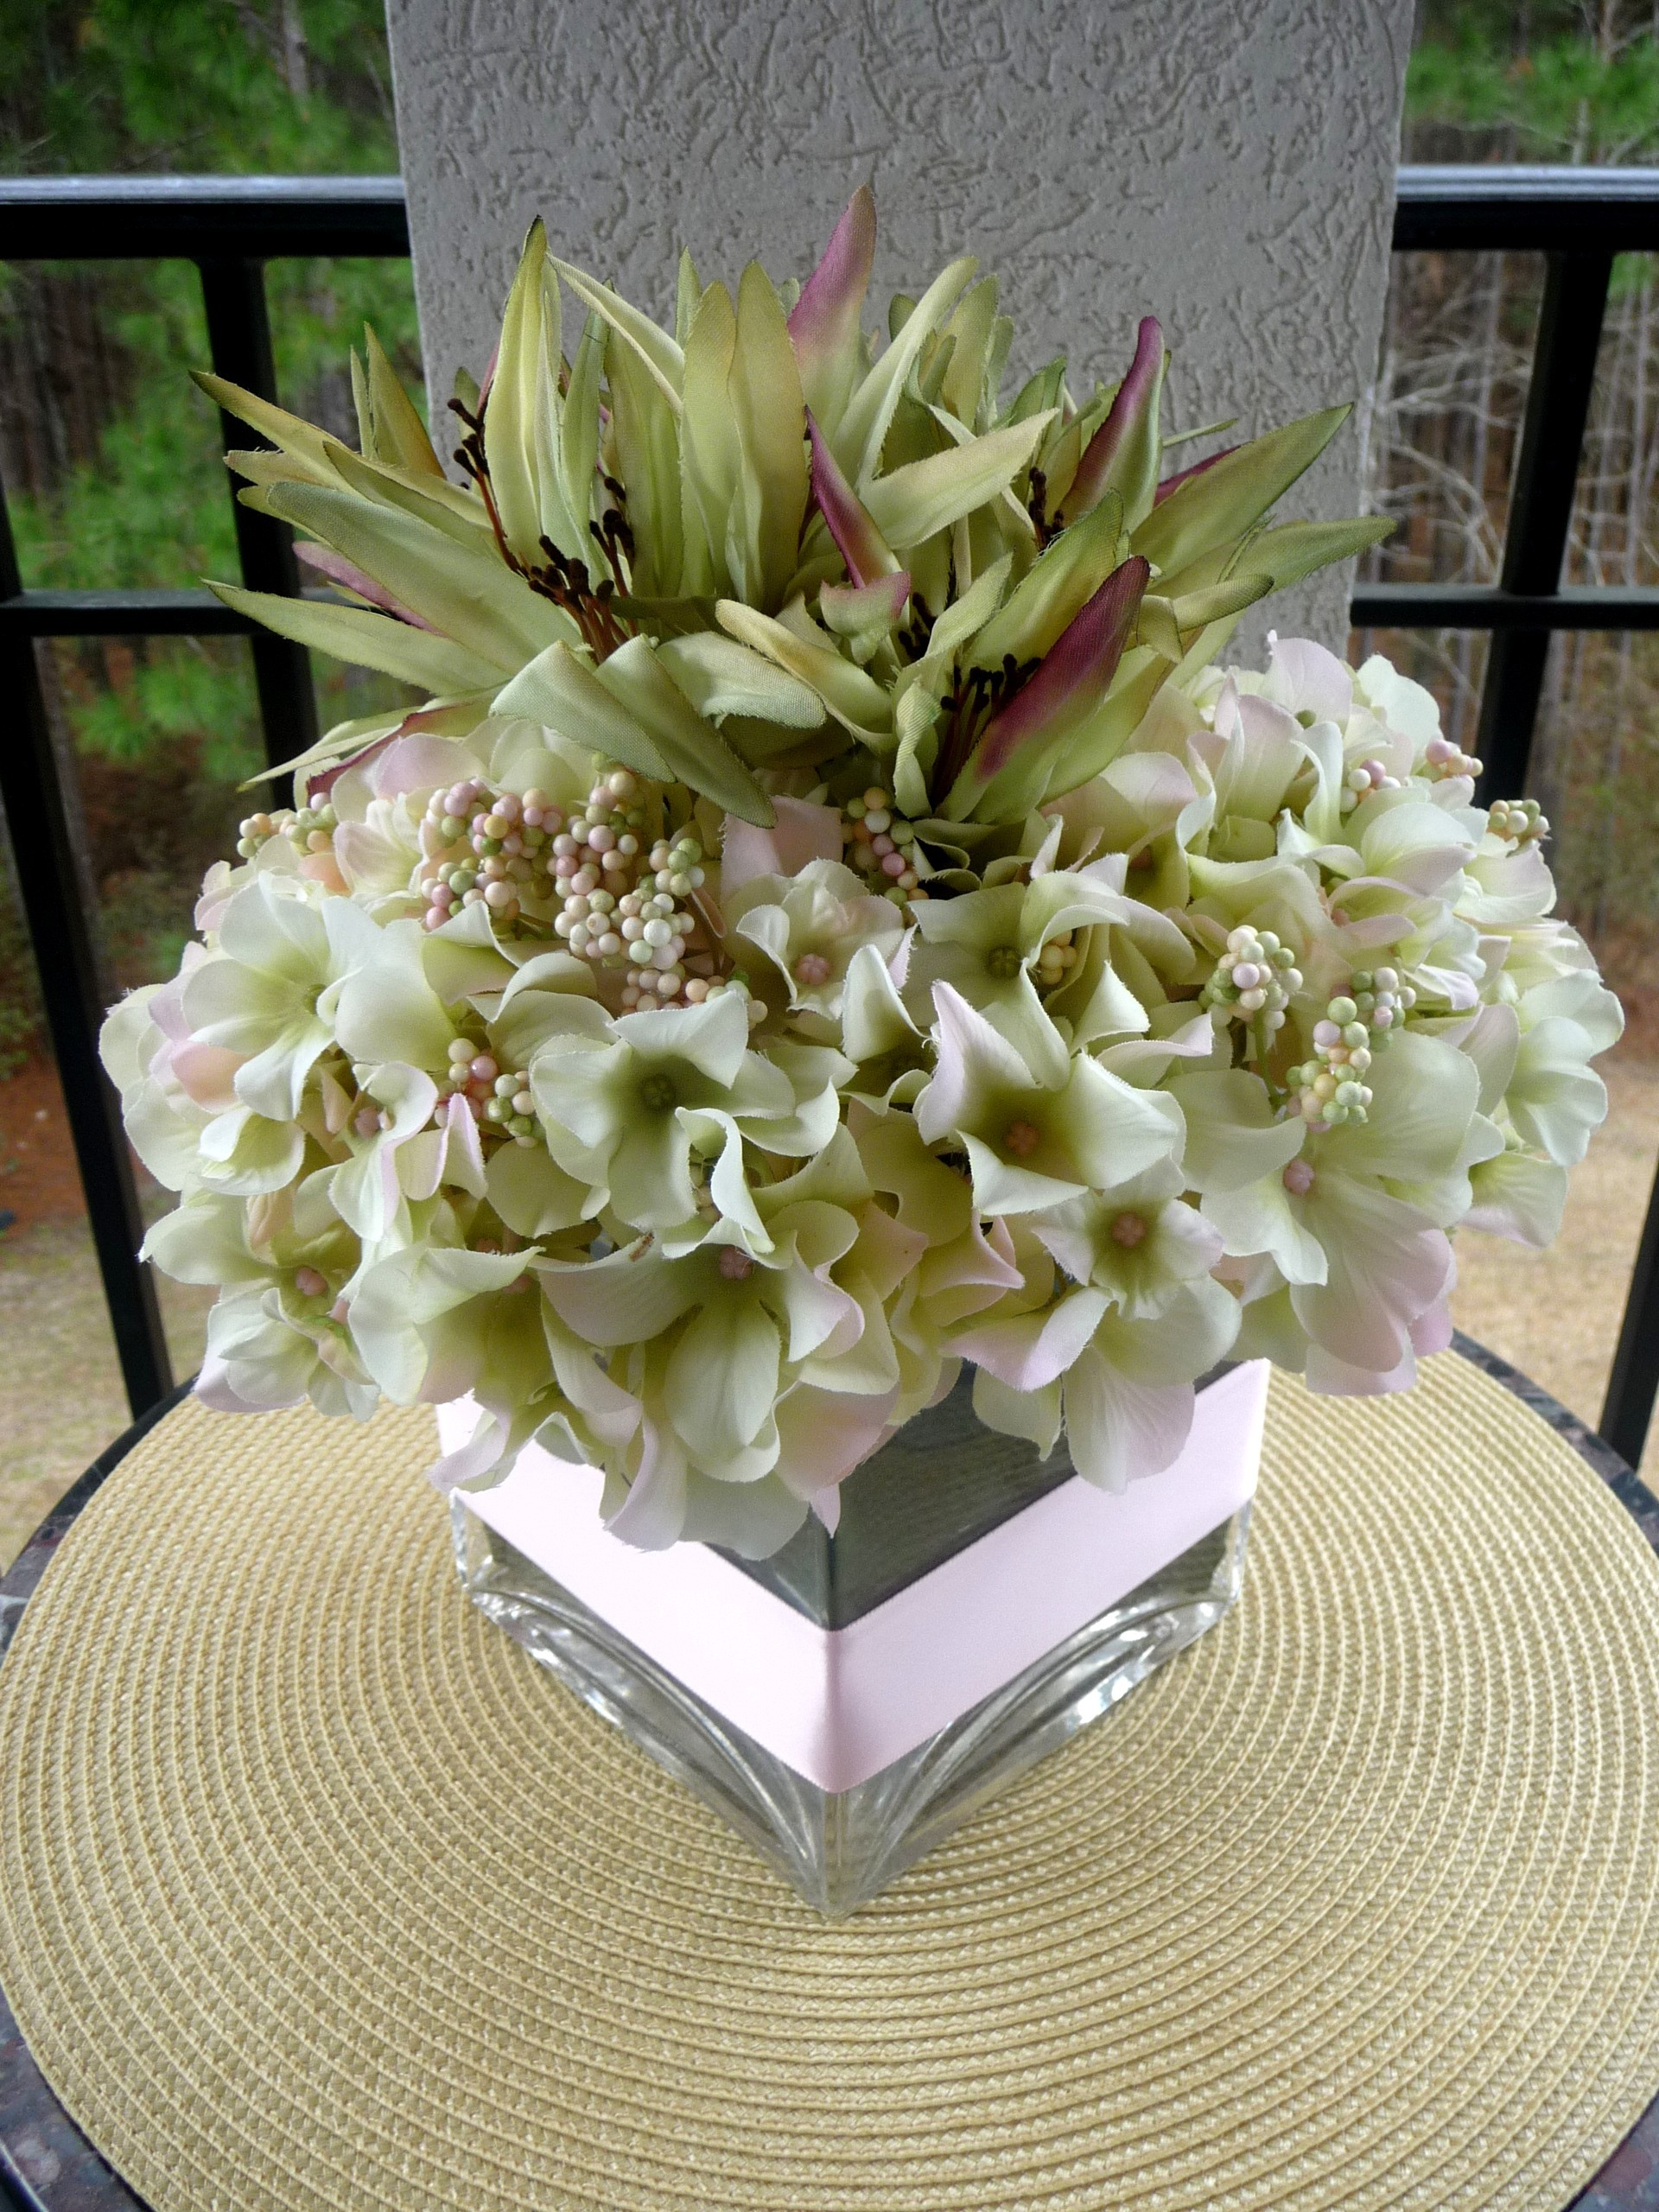 Inspiration, Reception, Flowers & Decor, Cakes, white, pink, purple, green, cake, Centerpieces, Flowers, Wedding, Lilies, Board, Hydrangea, Silks, Savannah event decor